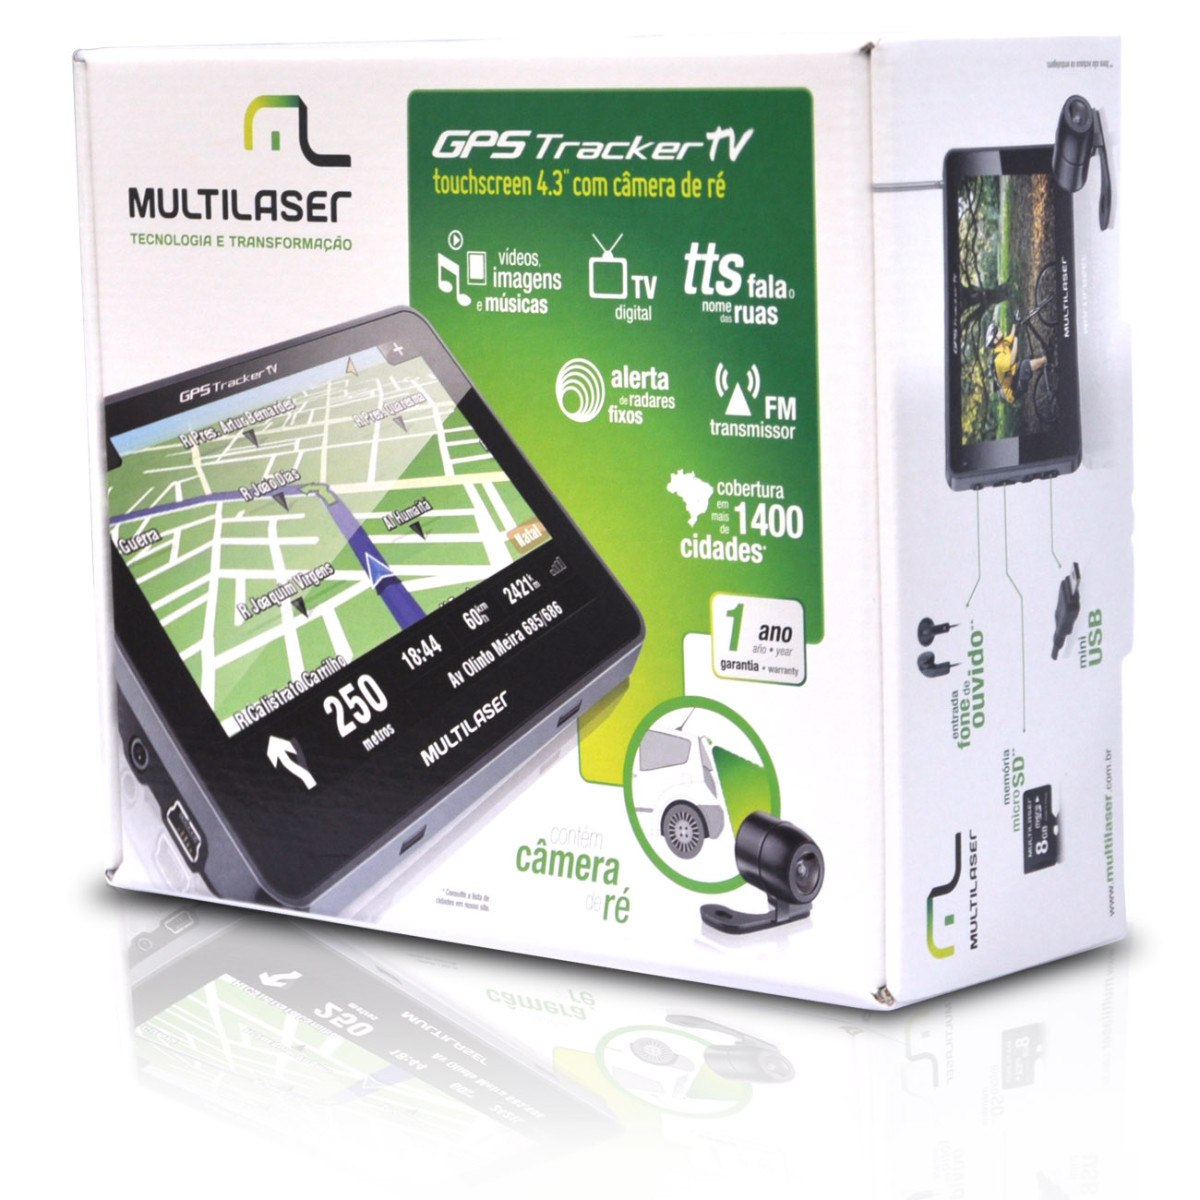 GPS Tracker 2- 4,3 C/AV IN+ TV + FM GP035 ( GP013) - Multilaser